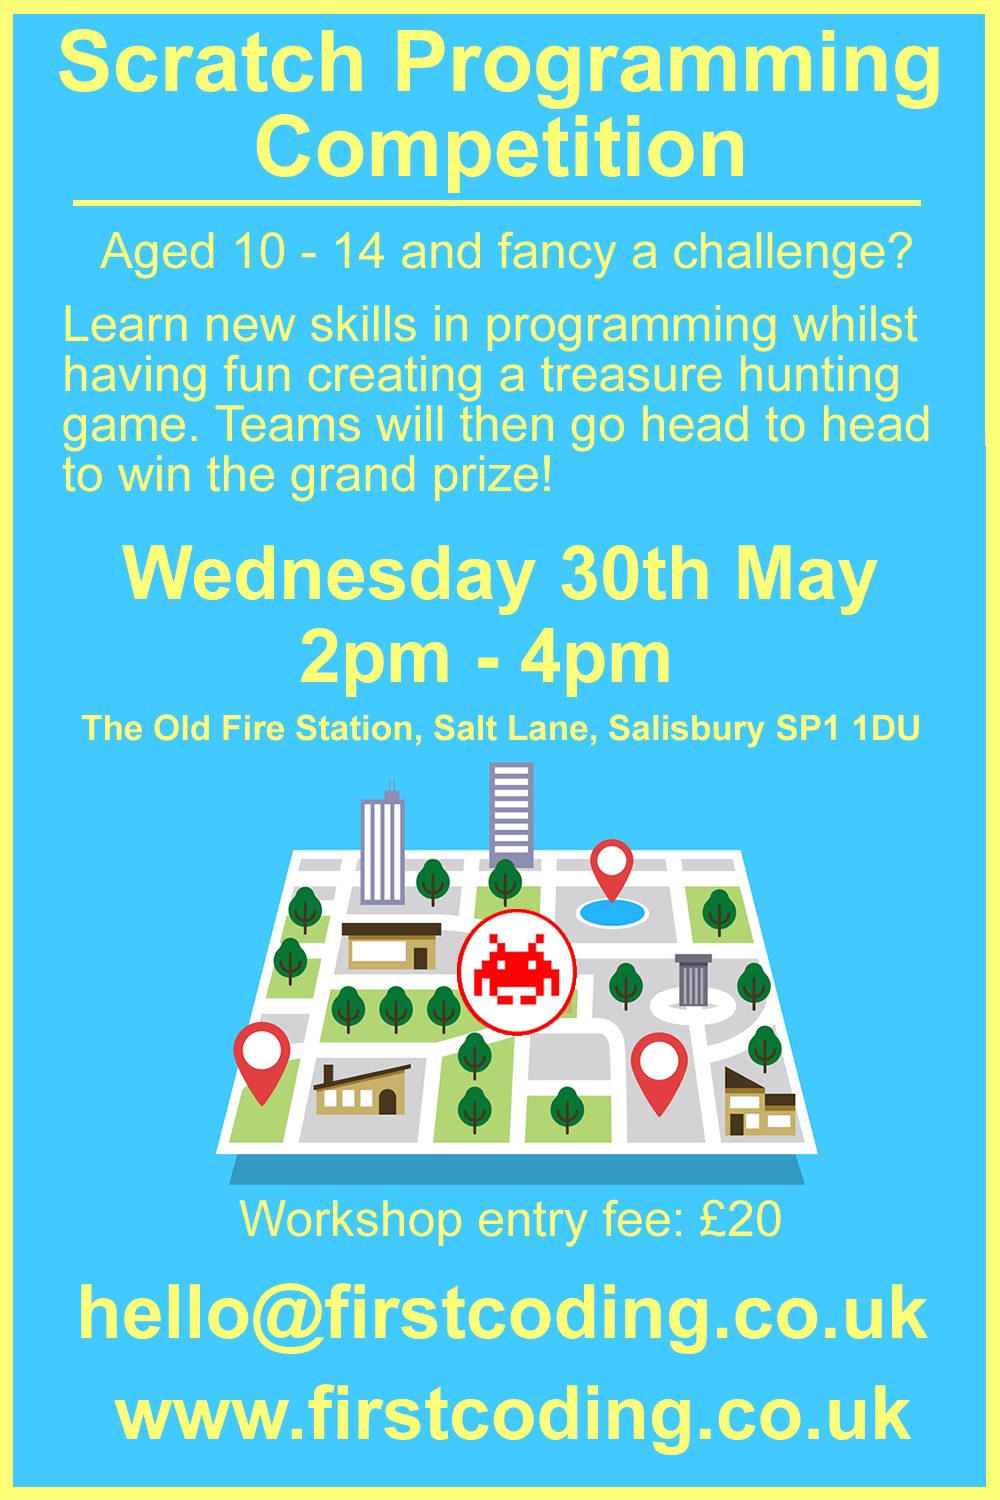 First Coding's Half Term Scratch Competition.